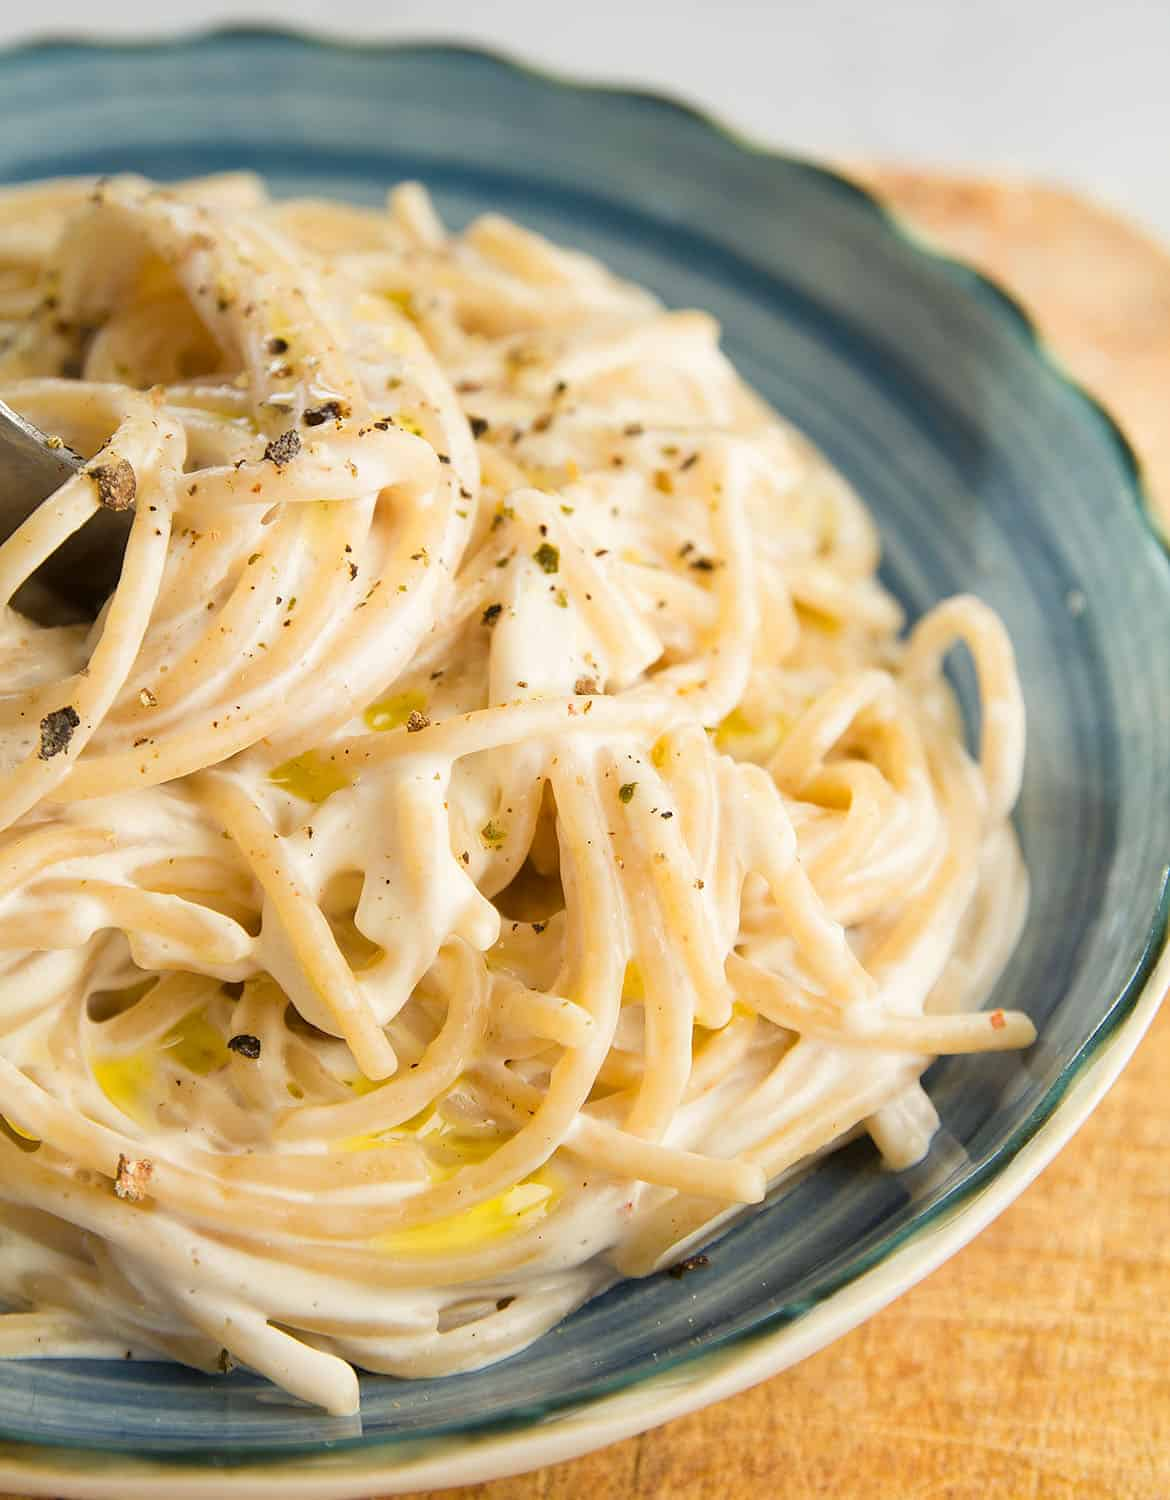 A portion of easy cream cheese pasta on a blue plate.